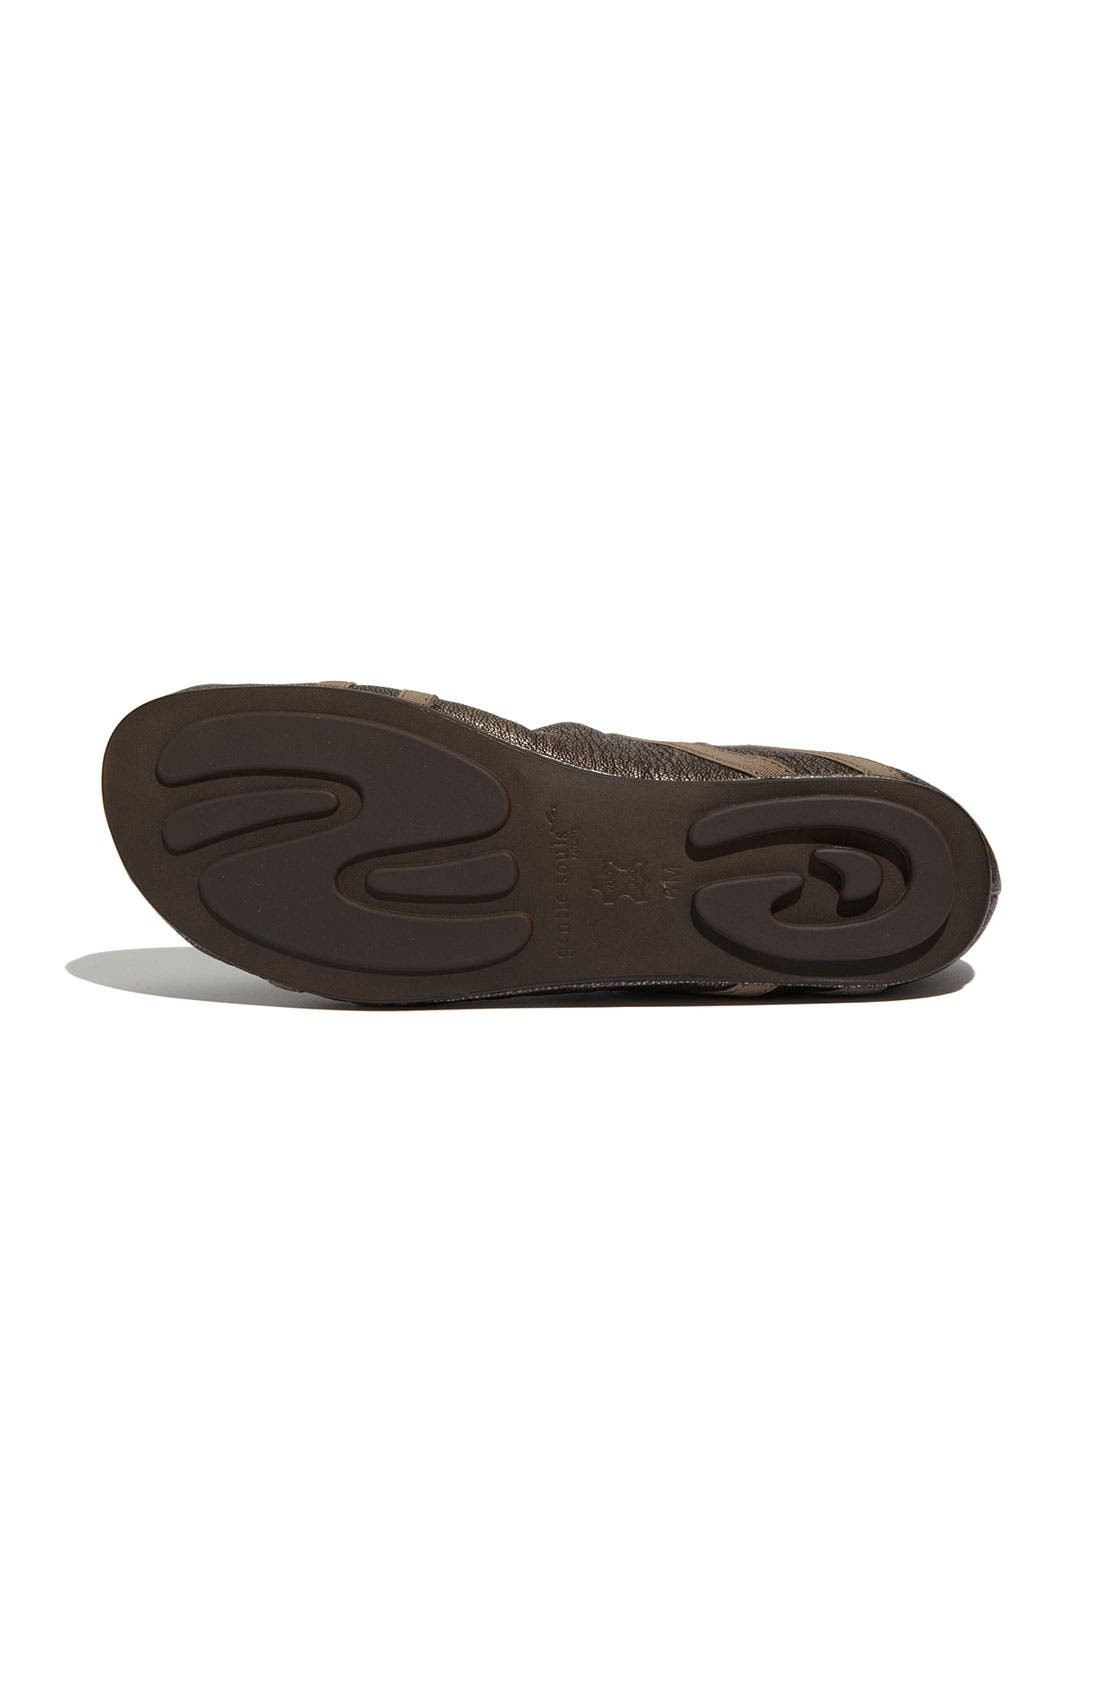 GENTLE SOULS BY KENNETH COLE, 'Bay Braid' Flat, Alternate thumbnail 4, color, ANTIQUE PEWTER